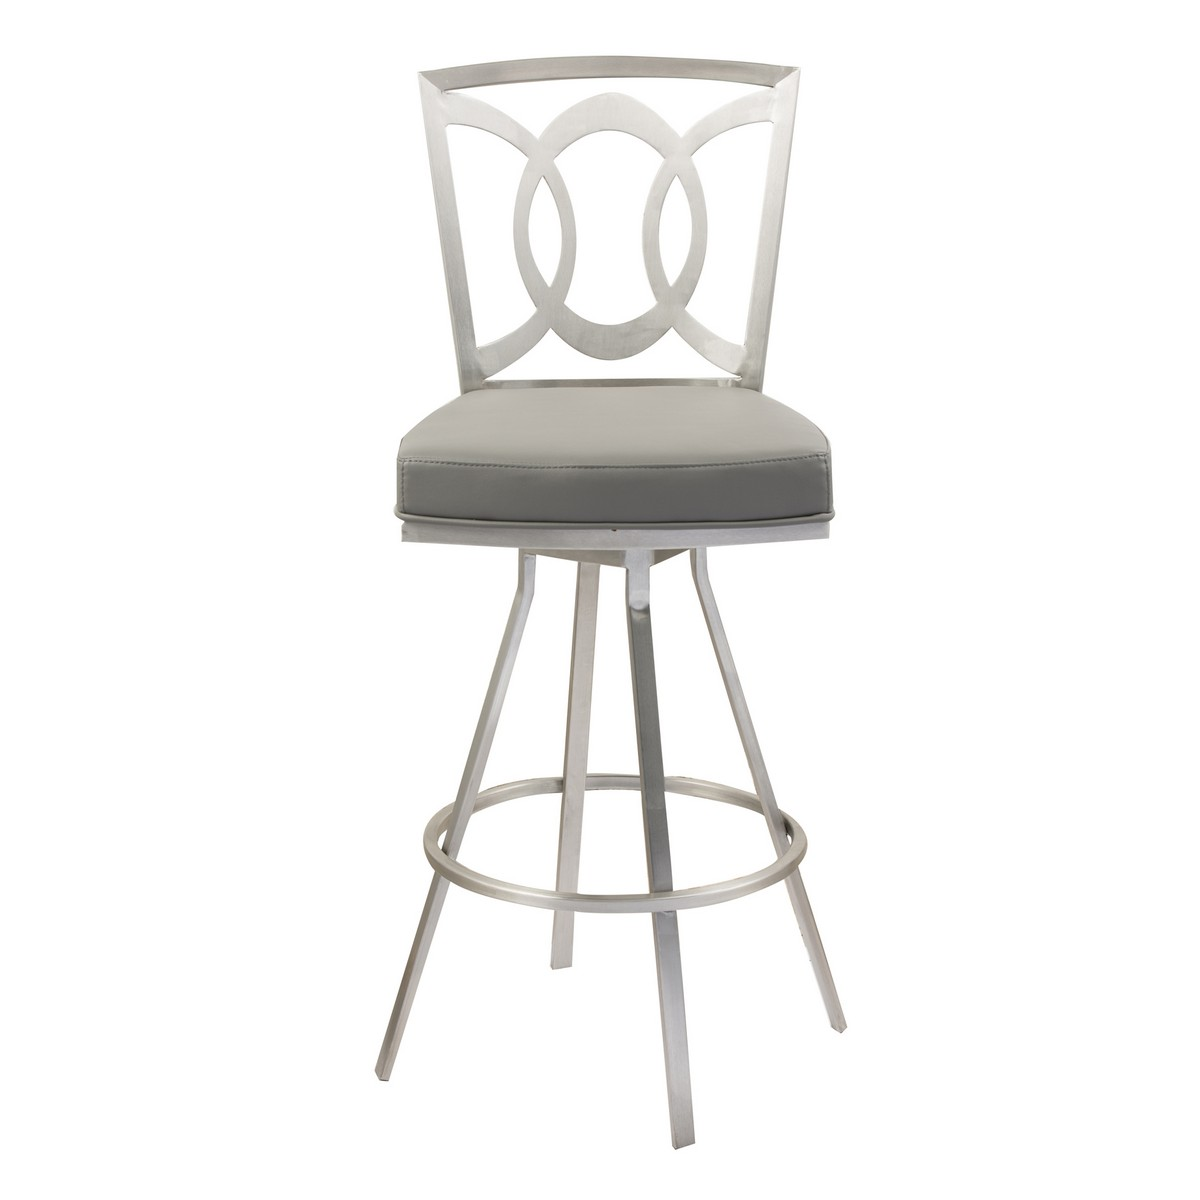 Armen Living Drake 26-inch Contemporary Swivel Barstool In Gray and Stainless Steel